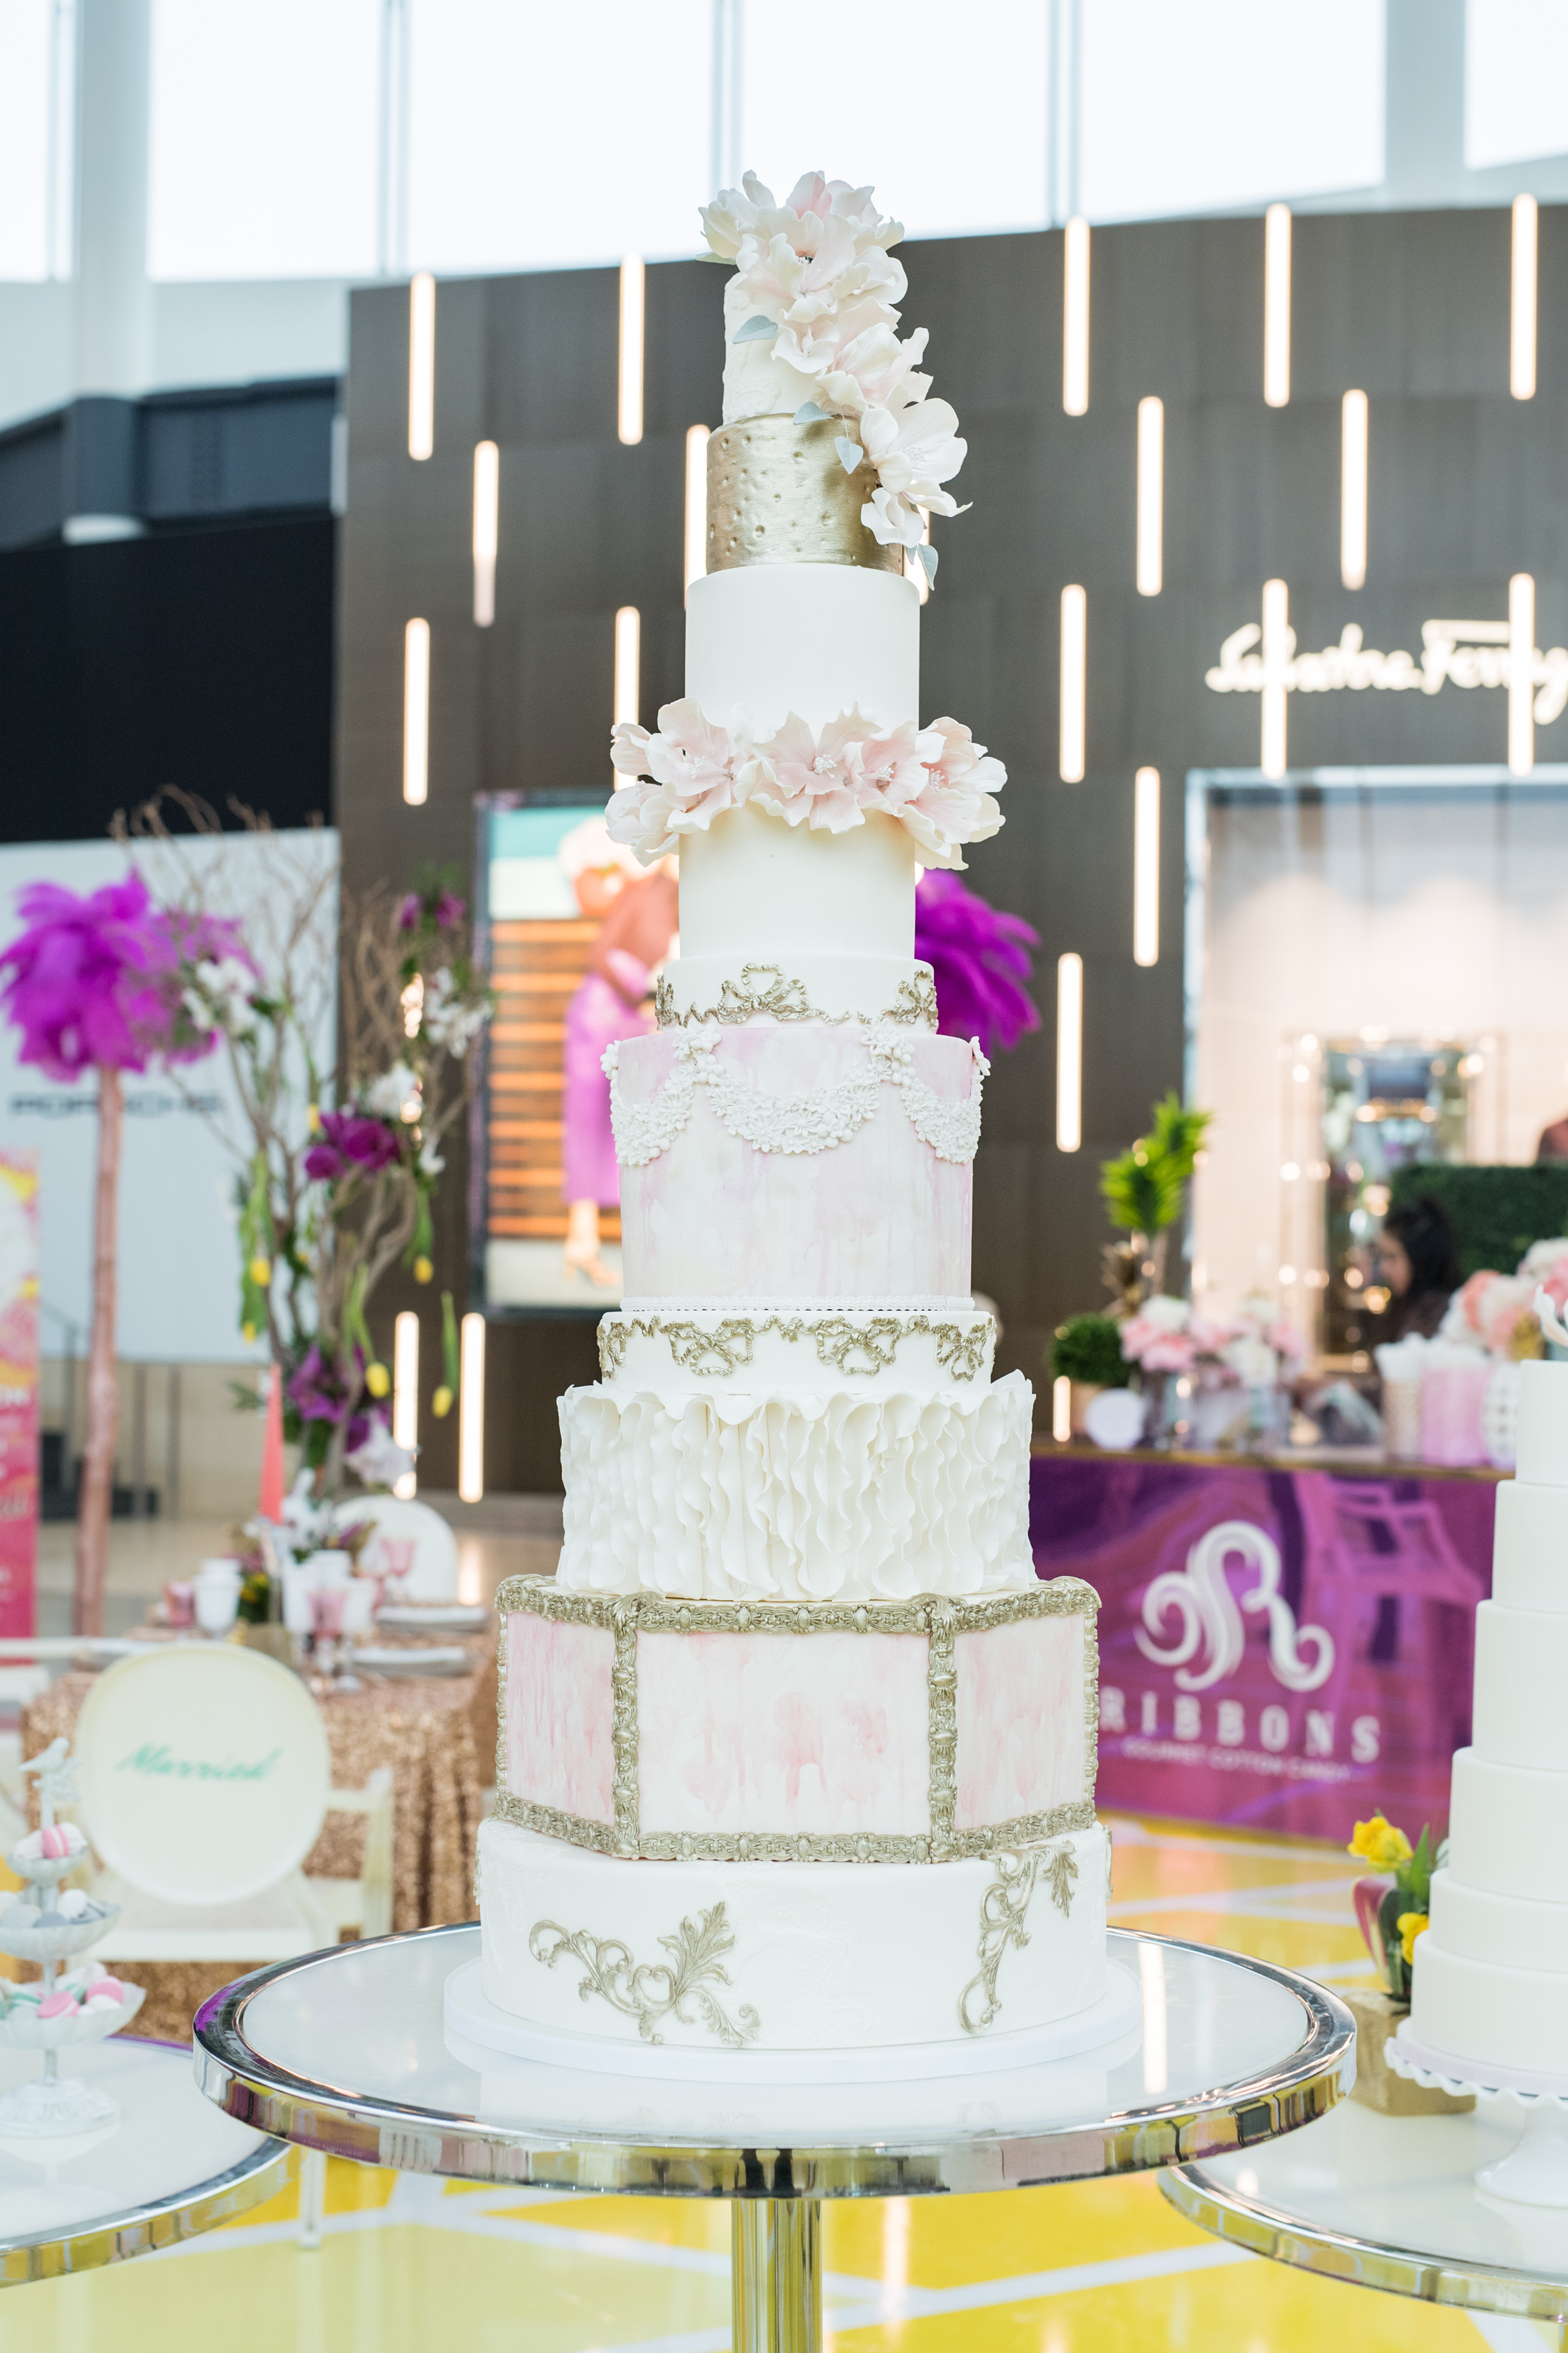 August In Bloom - Sweet Philosophy cake - #SQ1Bridal (Square One Shopping Centre)